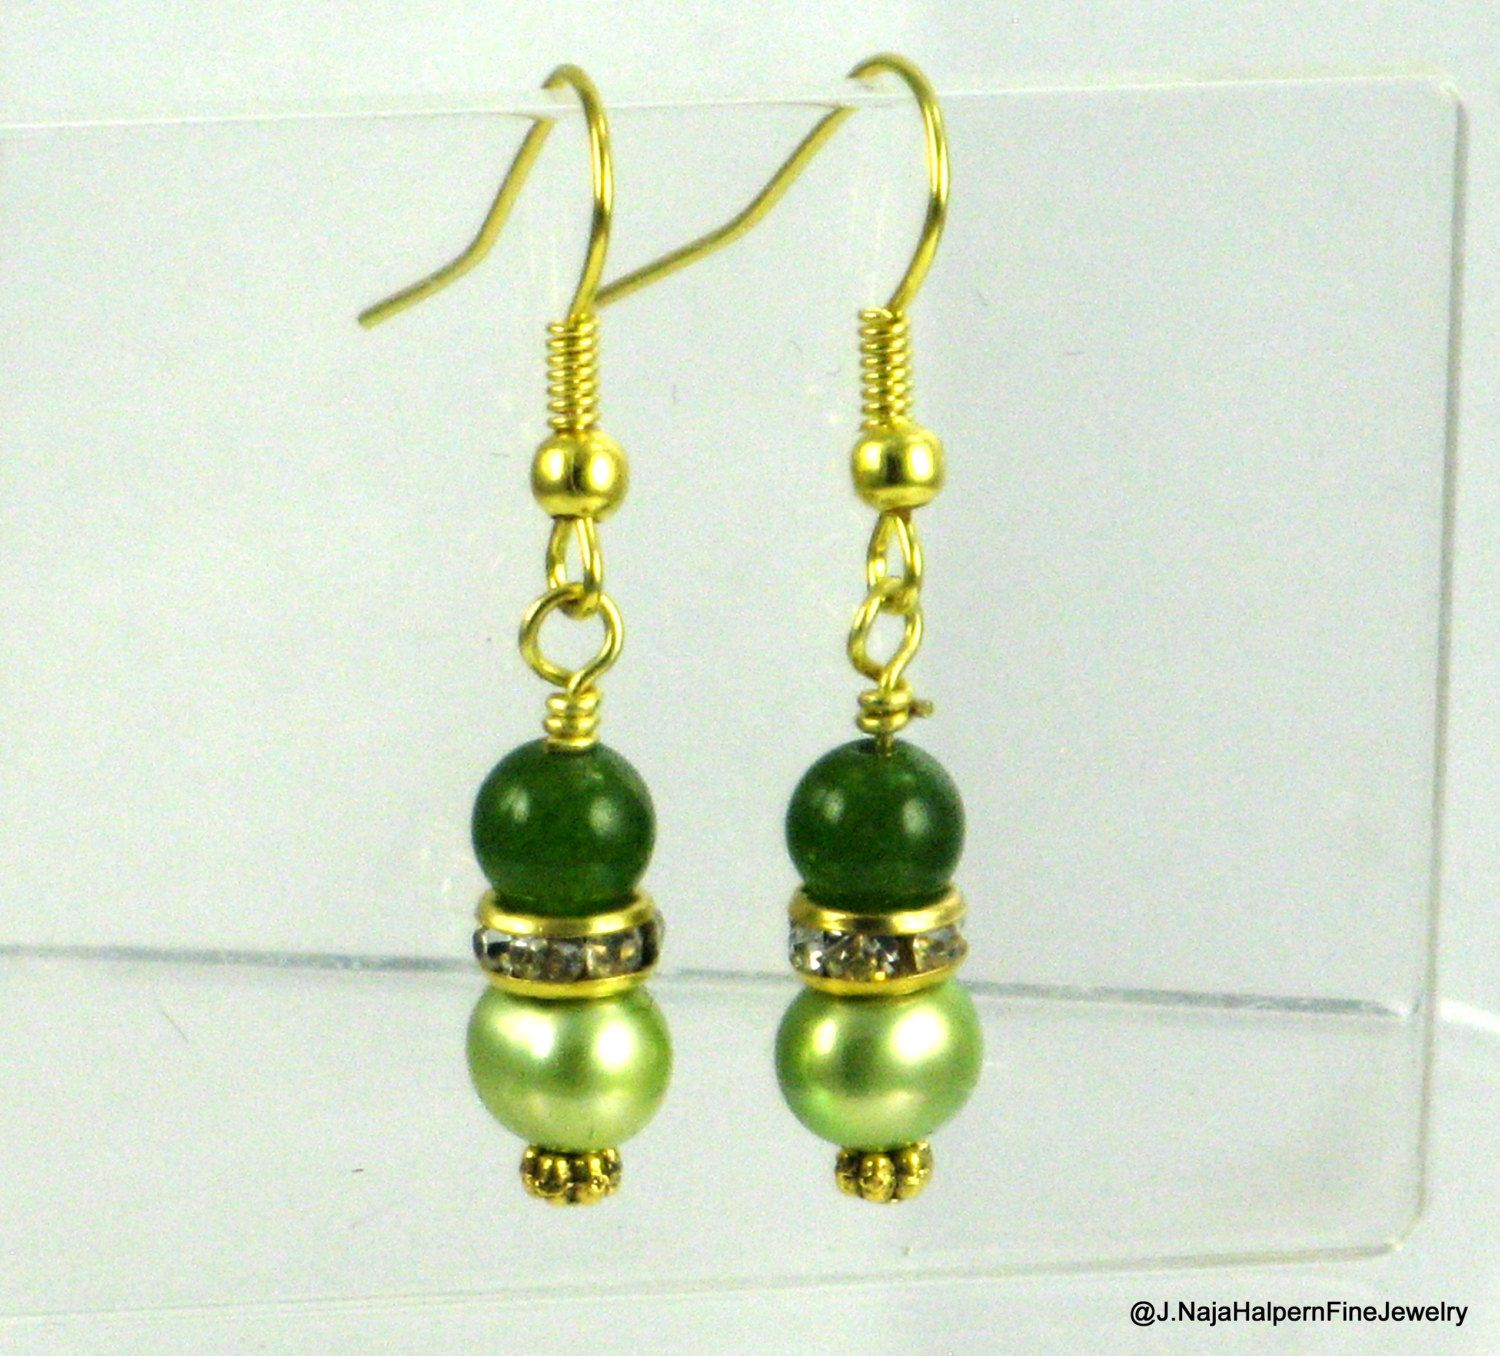 murano green click earrings ugo cavallo a glass and with orecc poggi pearls prodotti firenze bronze en